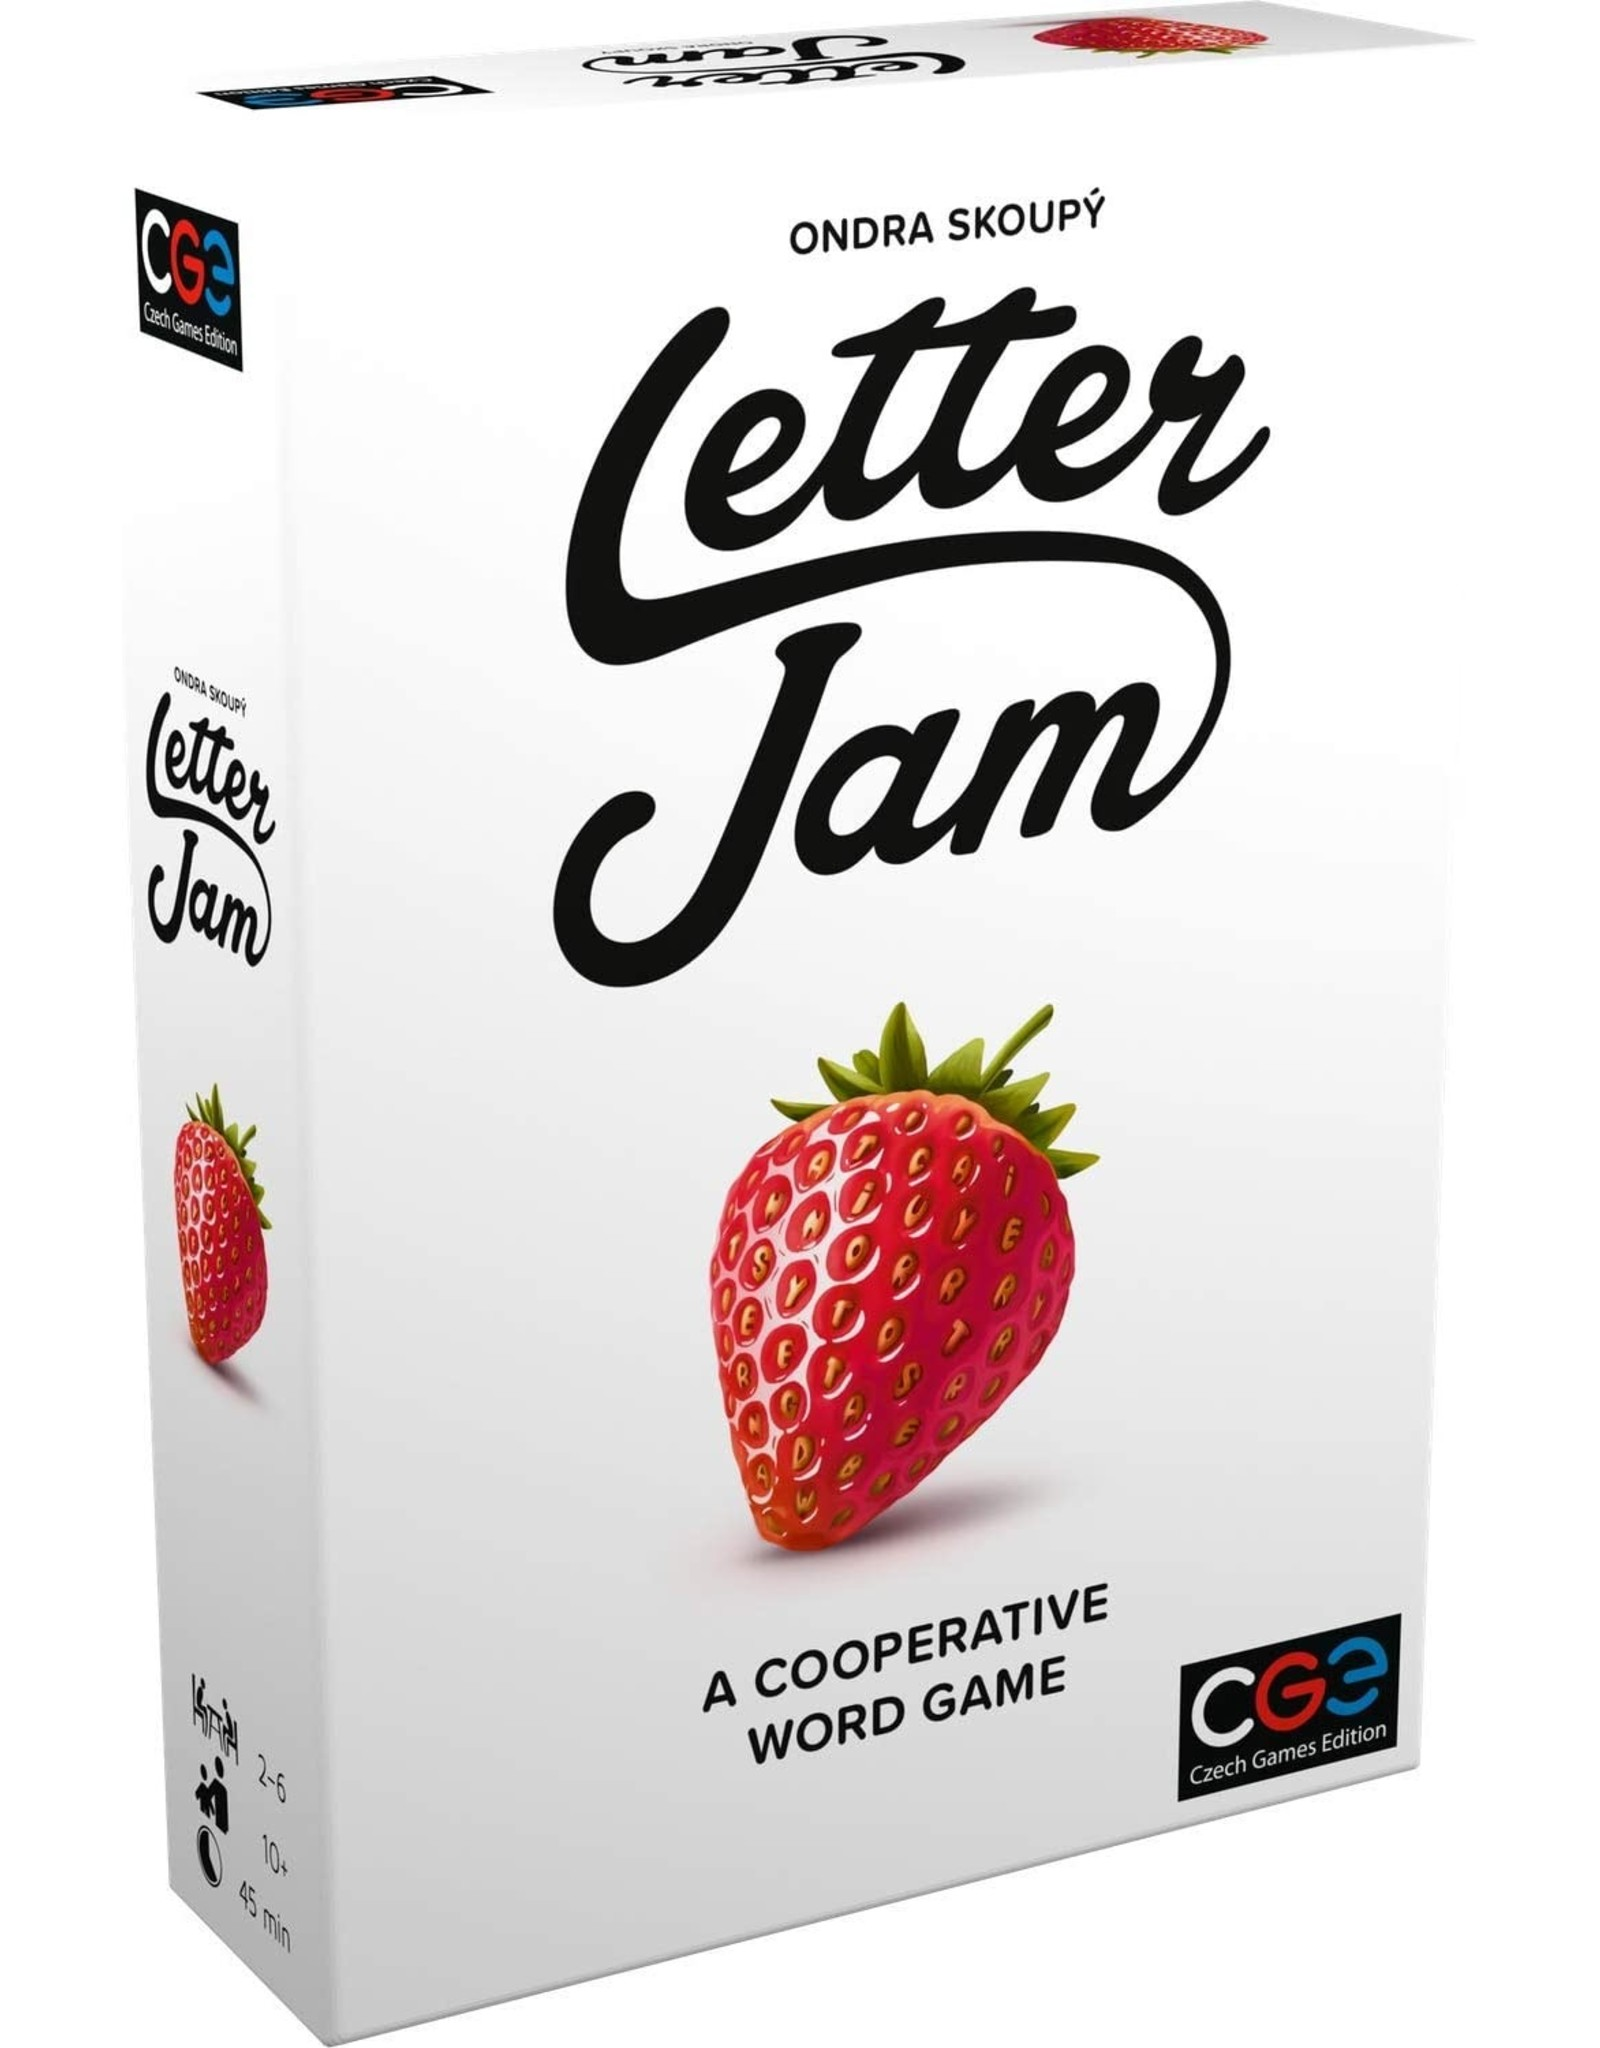 Czech Games Edition Letter Jam